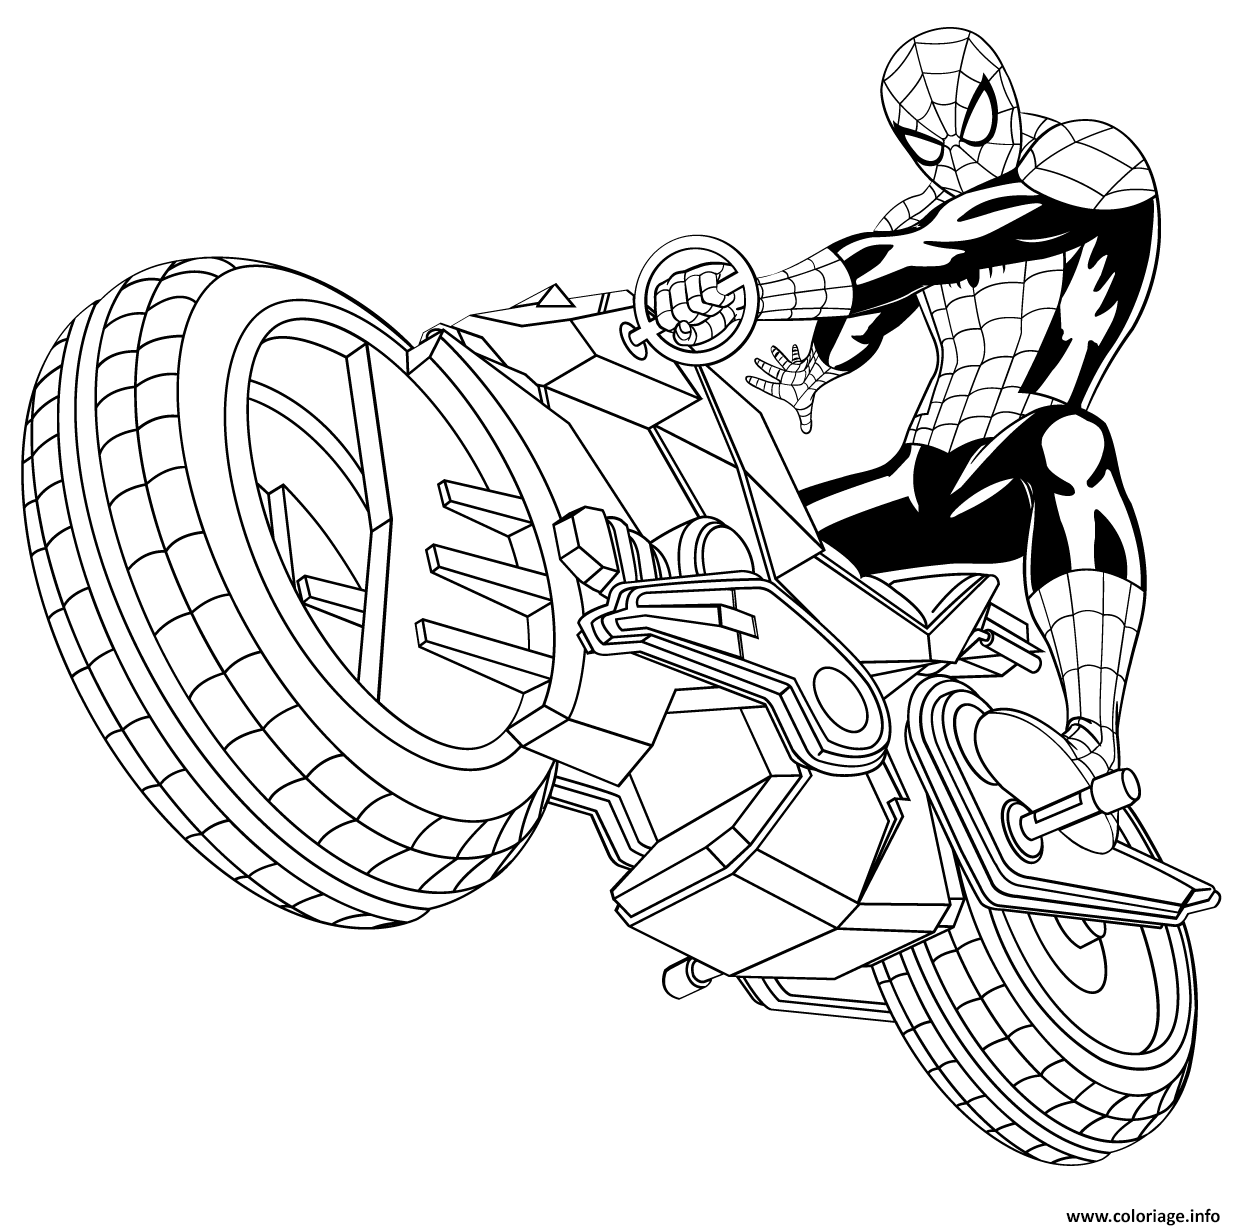 Coloriage spiderman avec sa spider moto auto tres rapide - Dessin spiderman facile ...